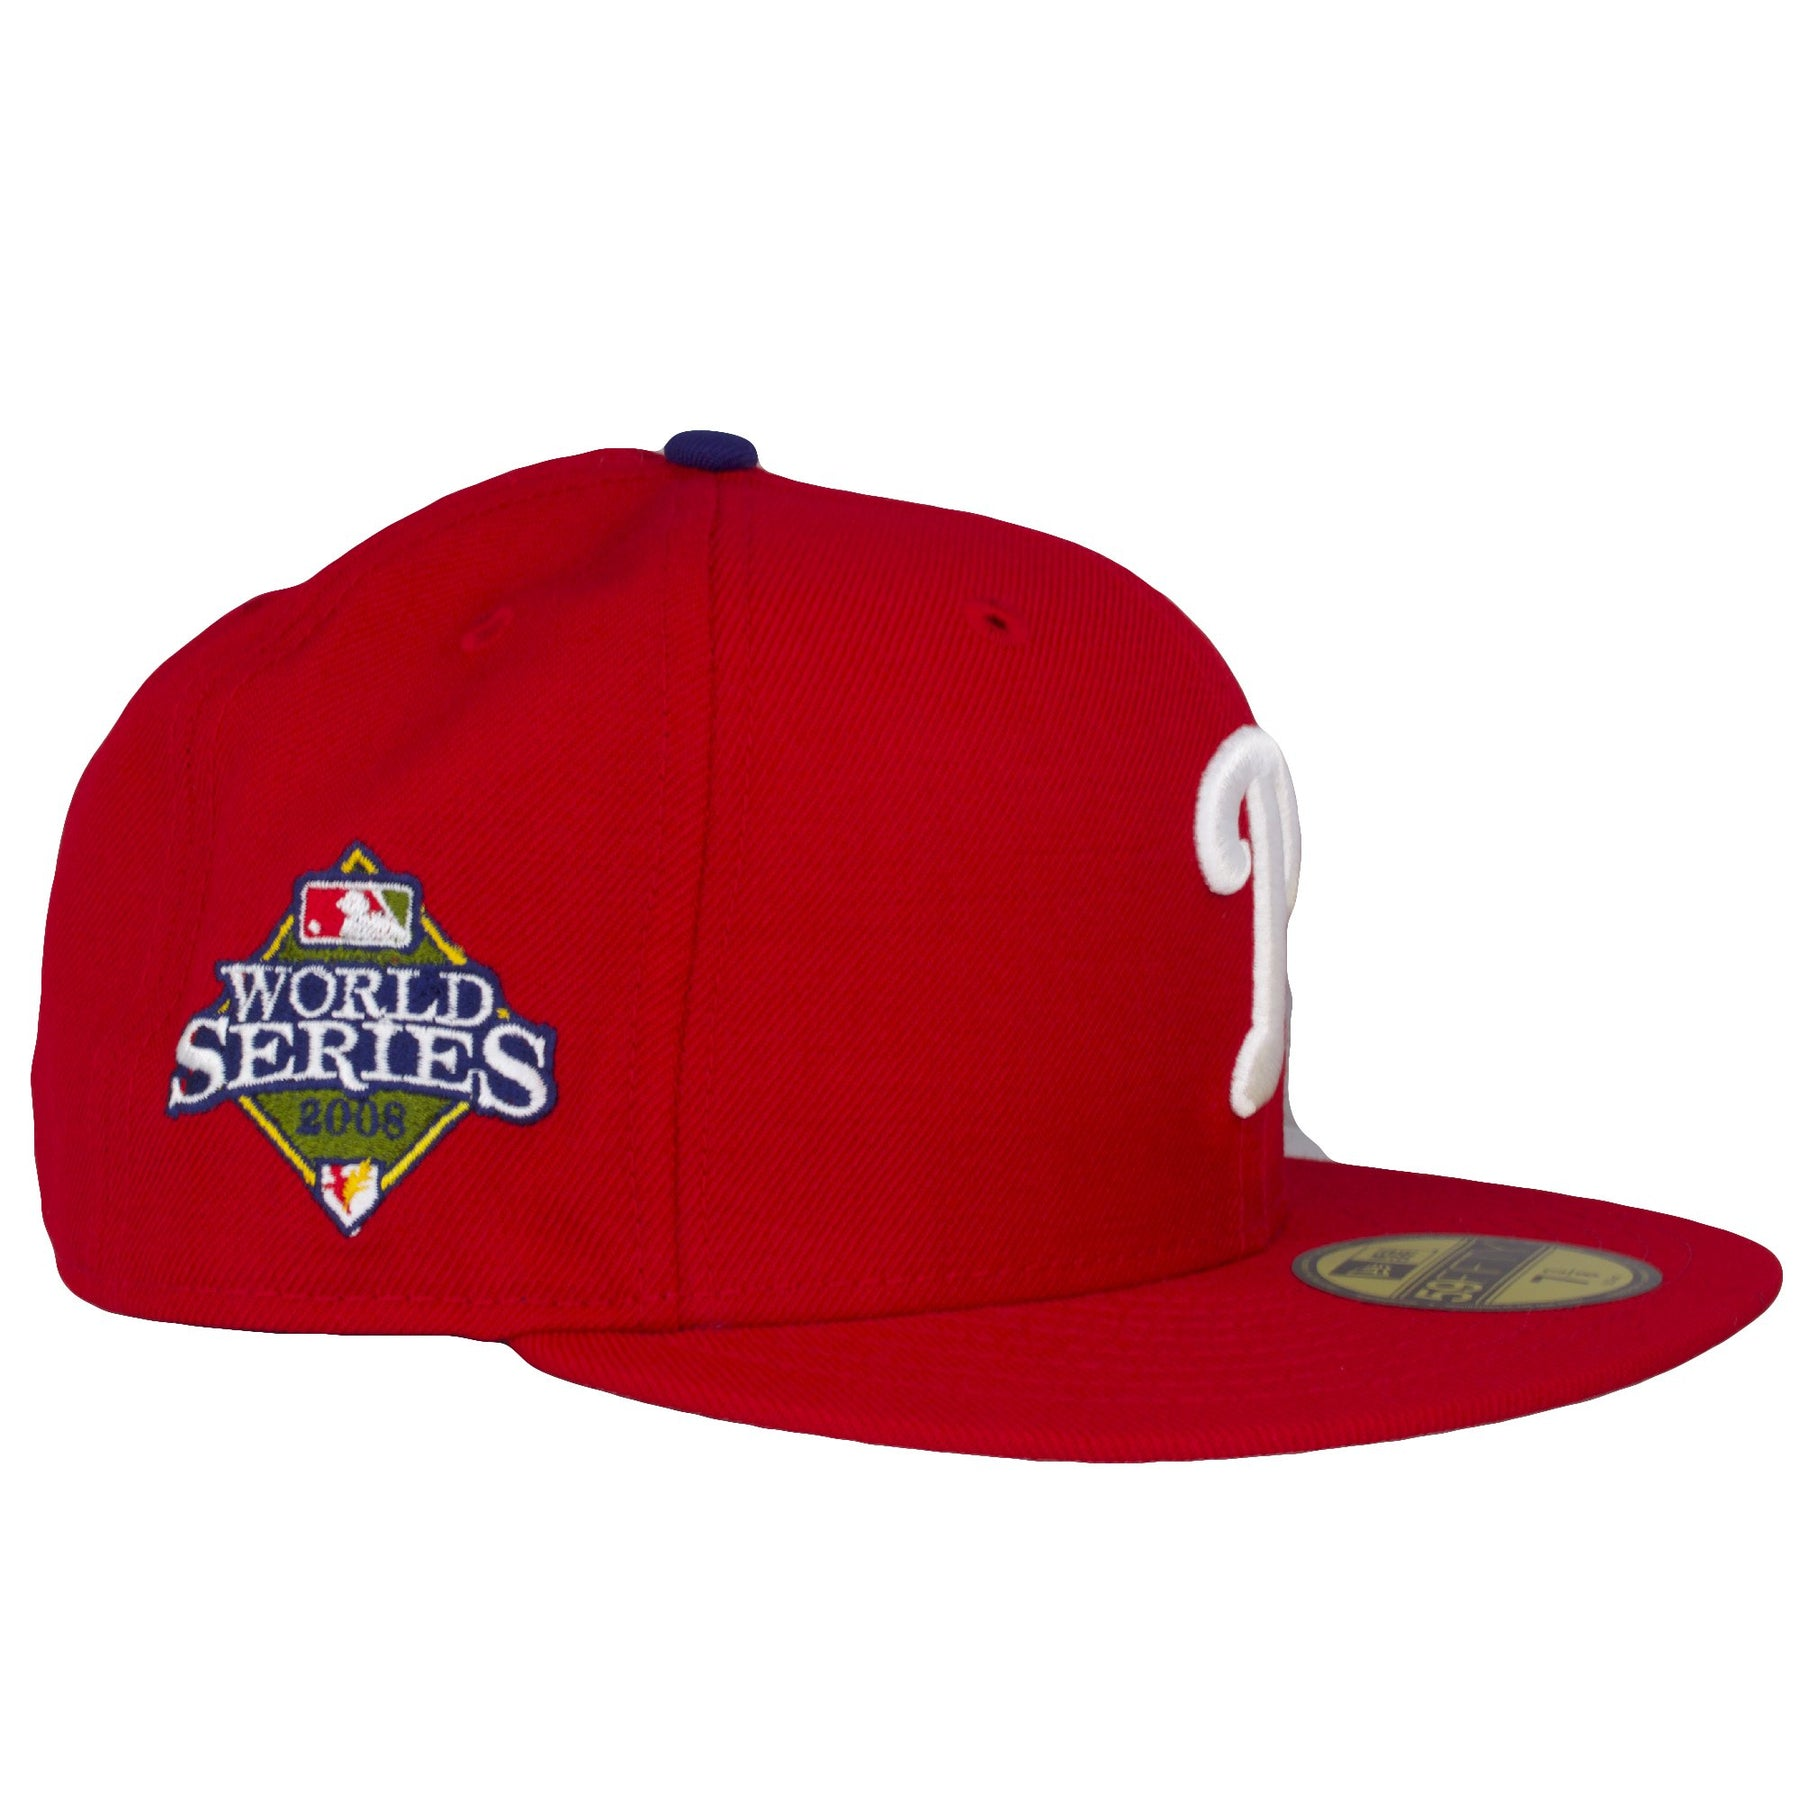 ... on the right side of the philadelphia phillies 2008 world series fitted  cap is the 2008 a350756faf7